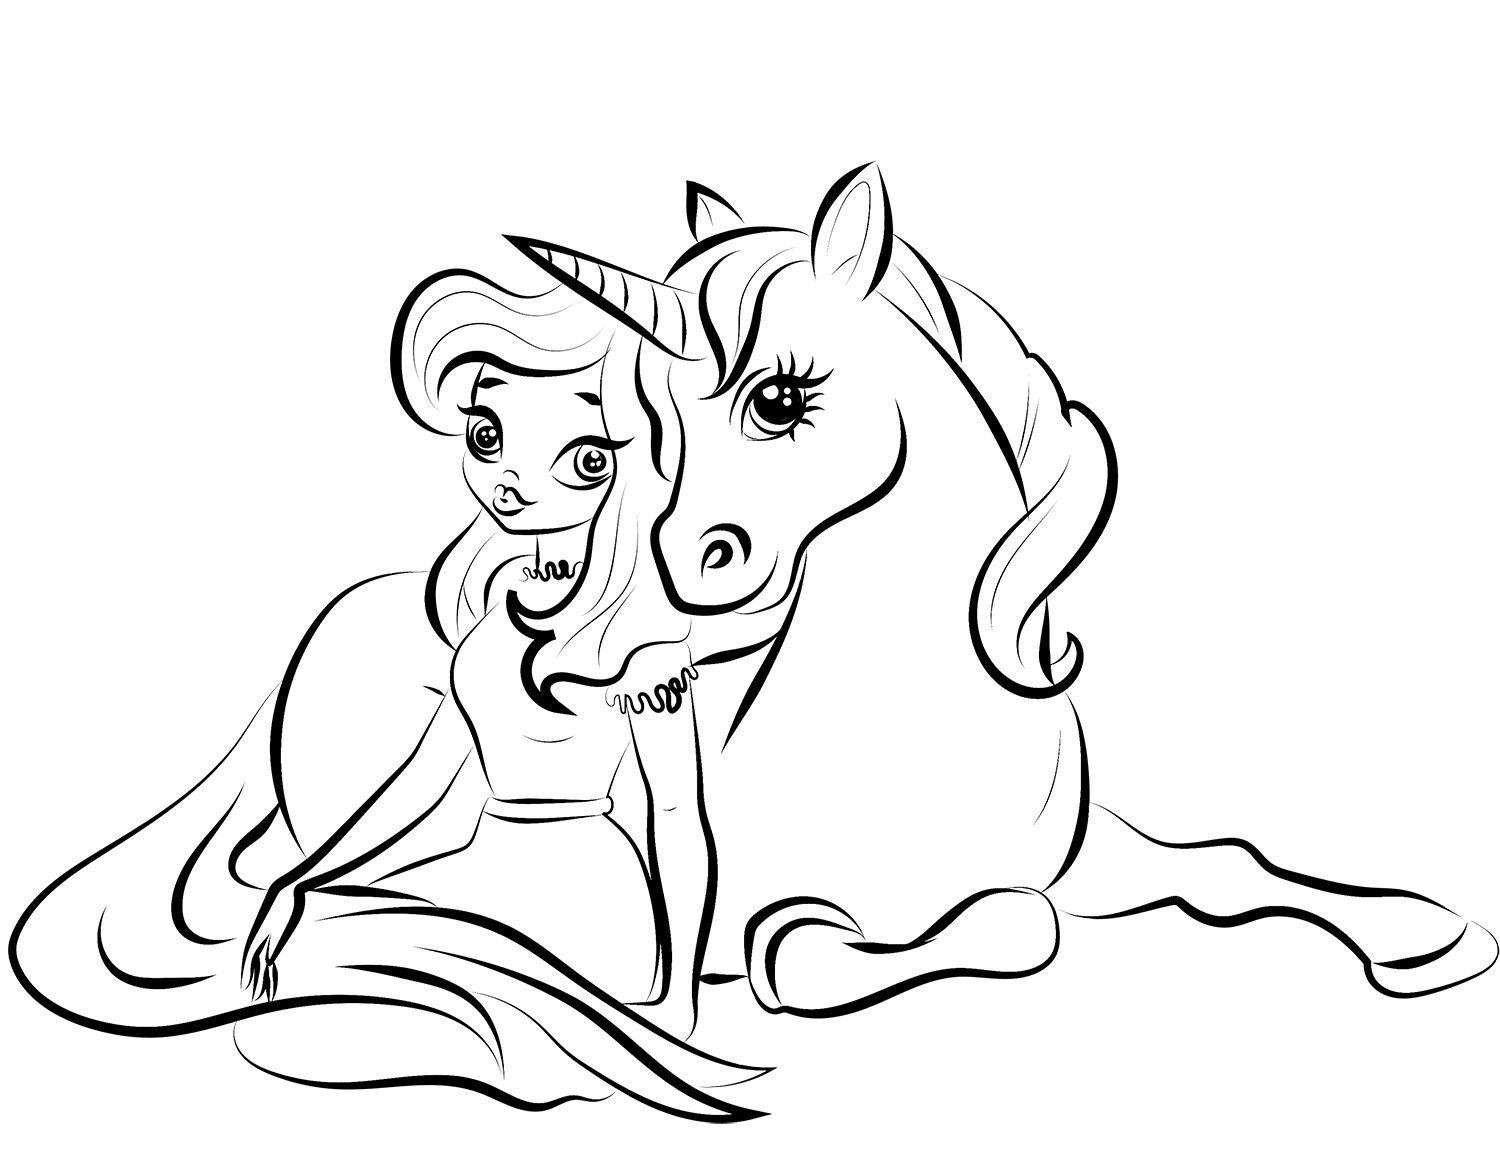 Princess With Unicorn Coloring Pages Princess Coloring Pages Unicorn Coloring Pages Bunny Coloring Pages